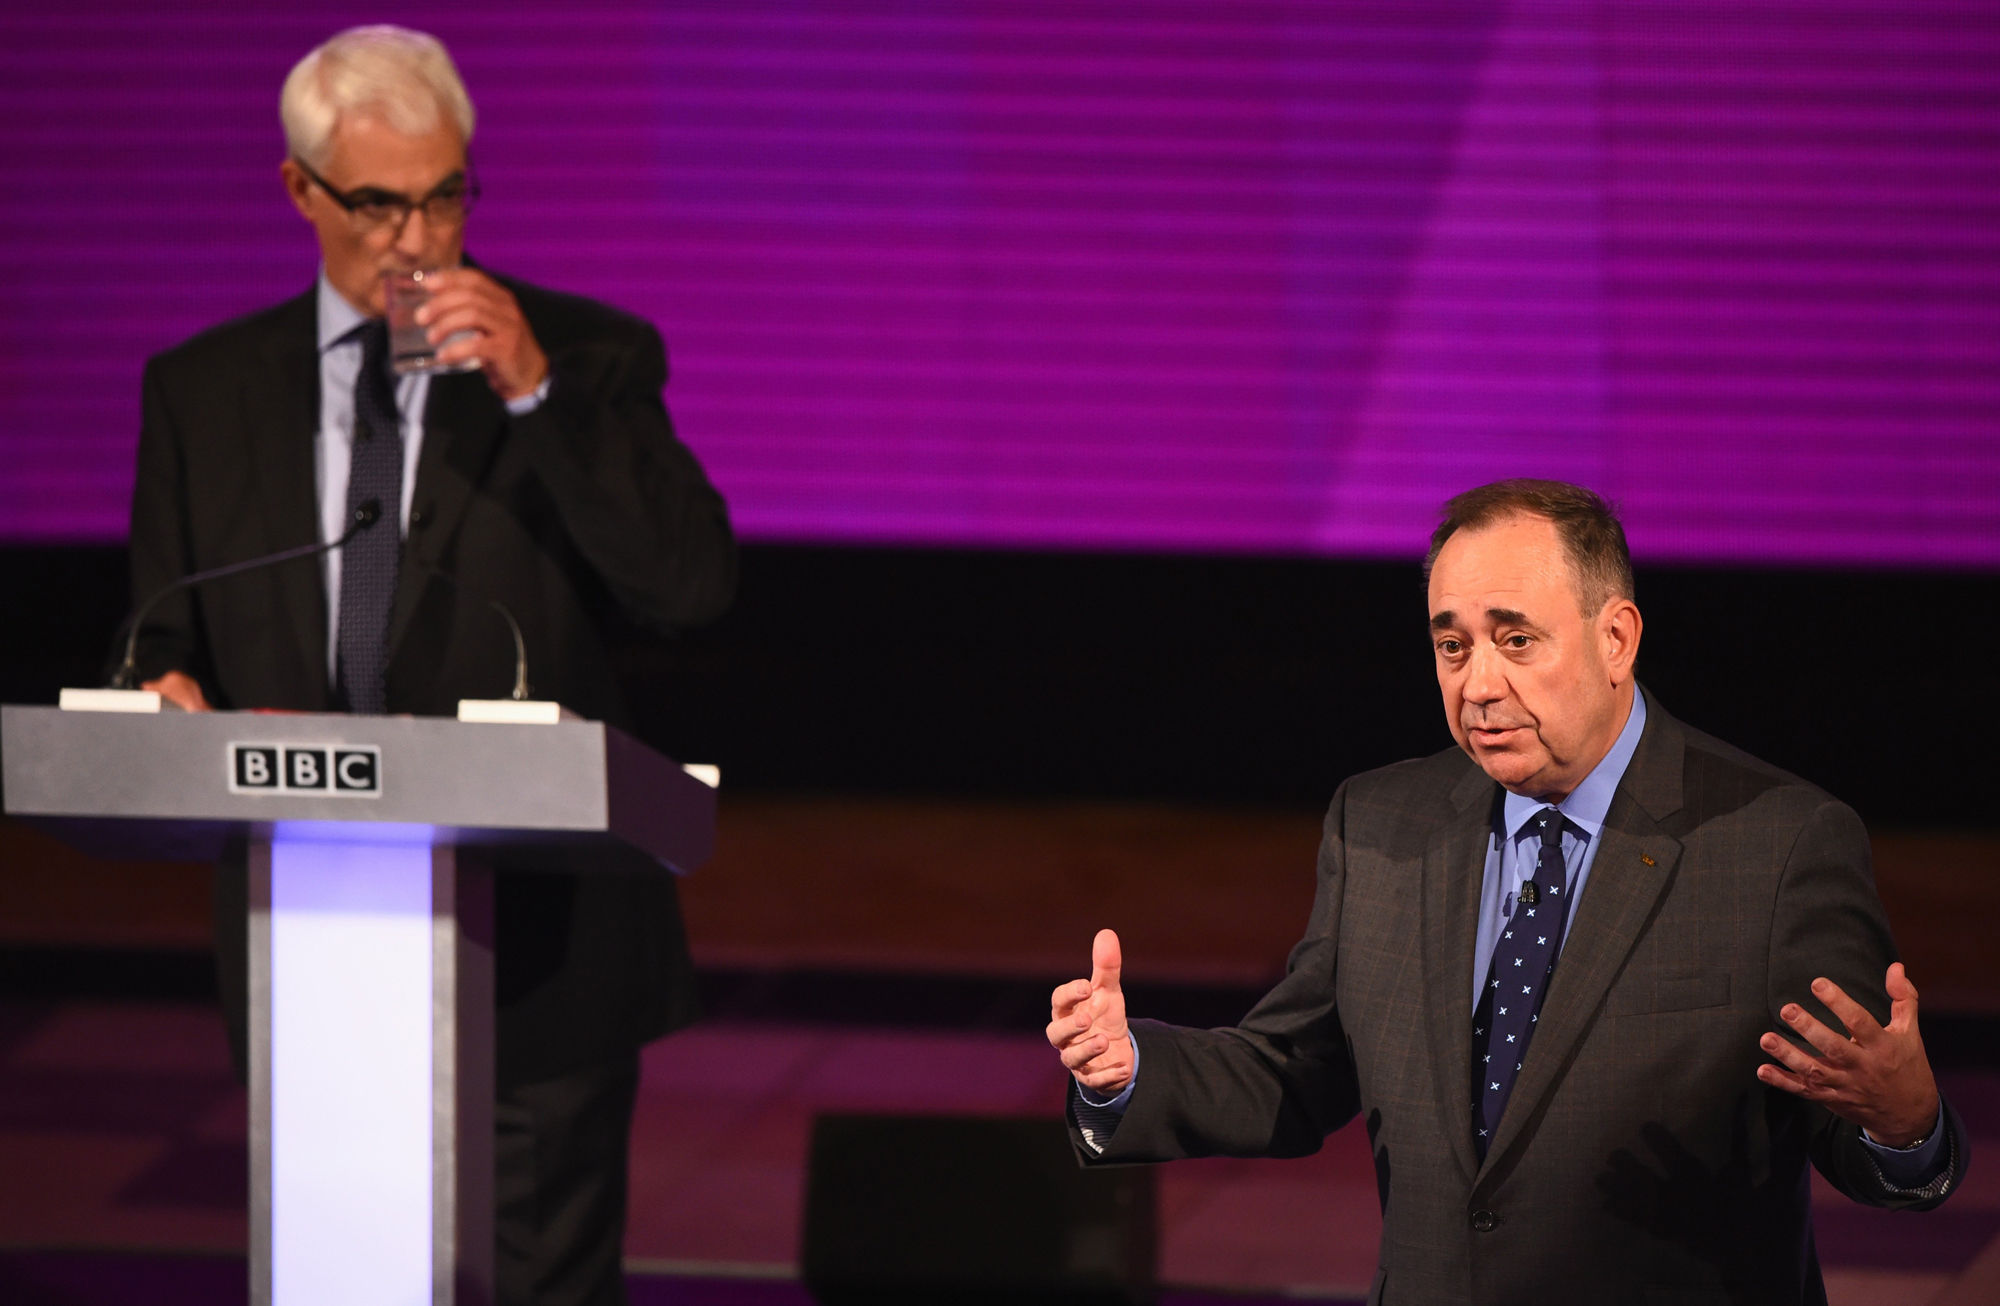 Alex Salmond, First Minister of Scotland and Alistair Darling, chairman of Better Together, take part in a live television debate by the BBC in the Kelvingrove Art Galleries on Aug. 25, 2014 in Glasgow, Scotland.